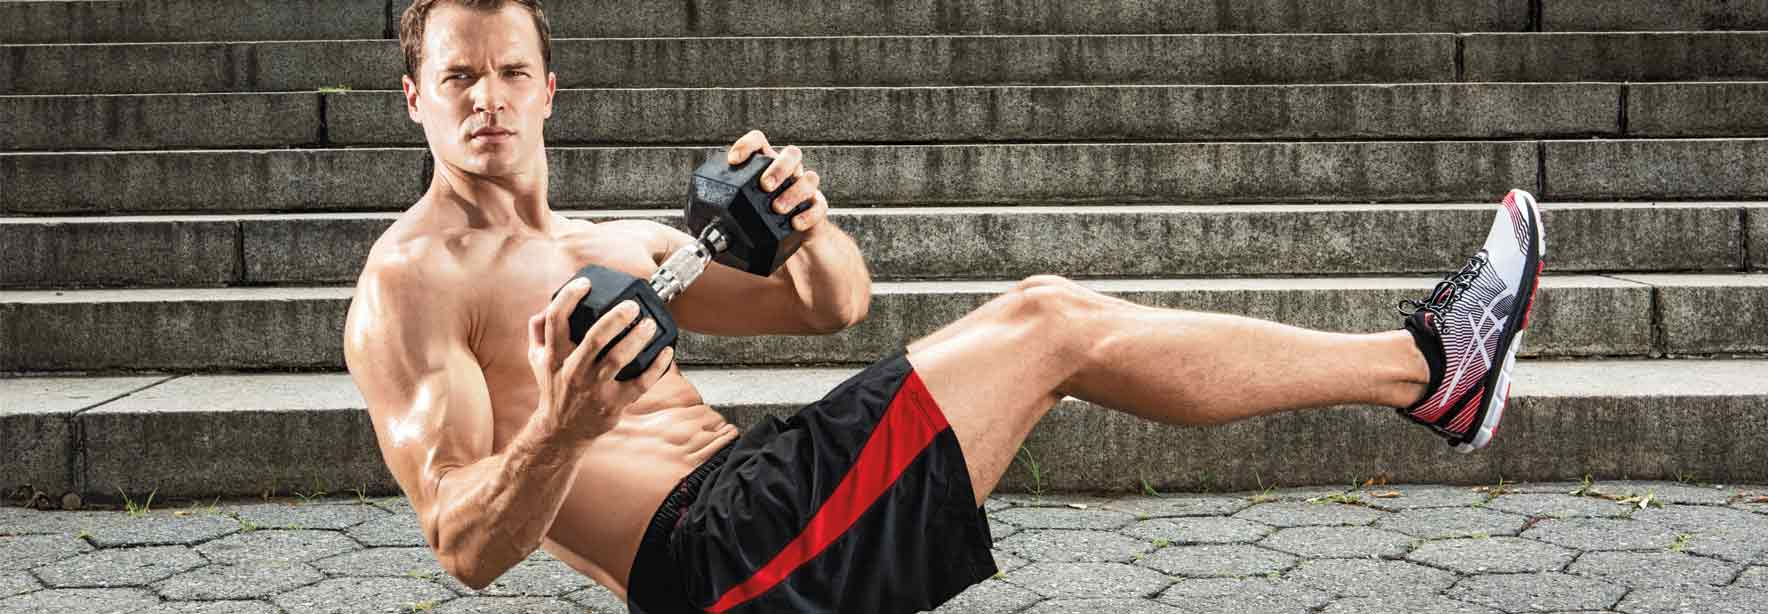 Six-Week Summer Cleaning Workout